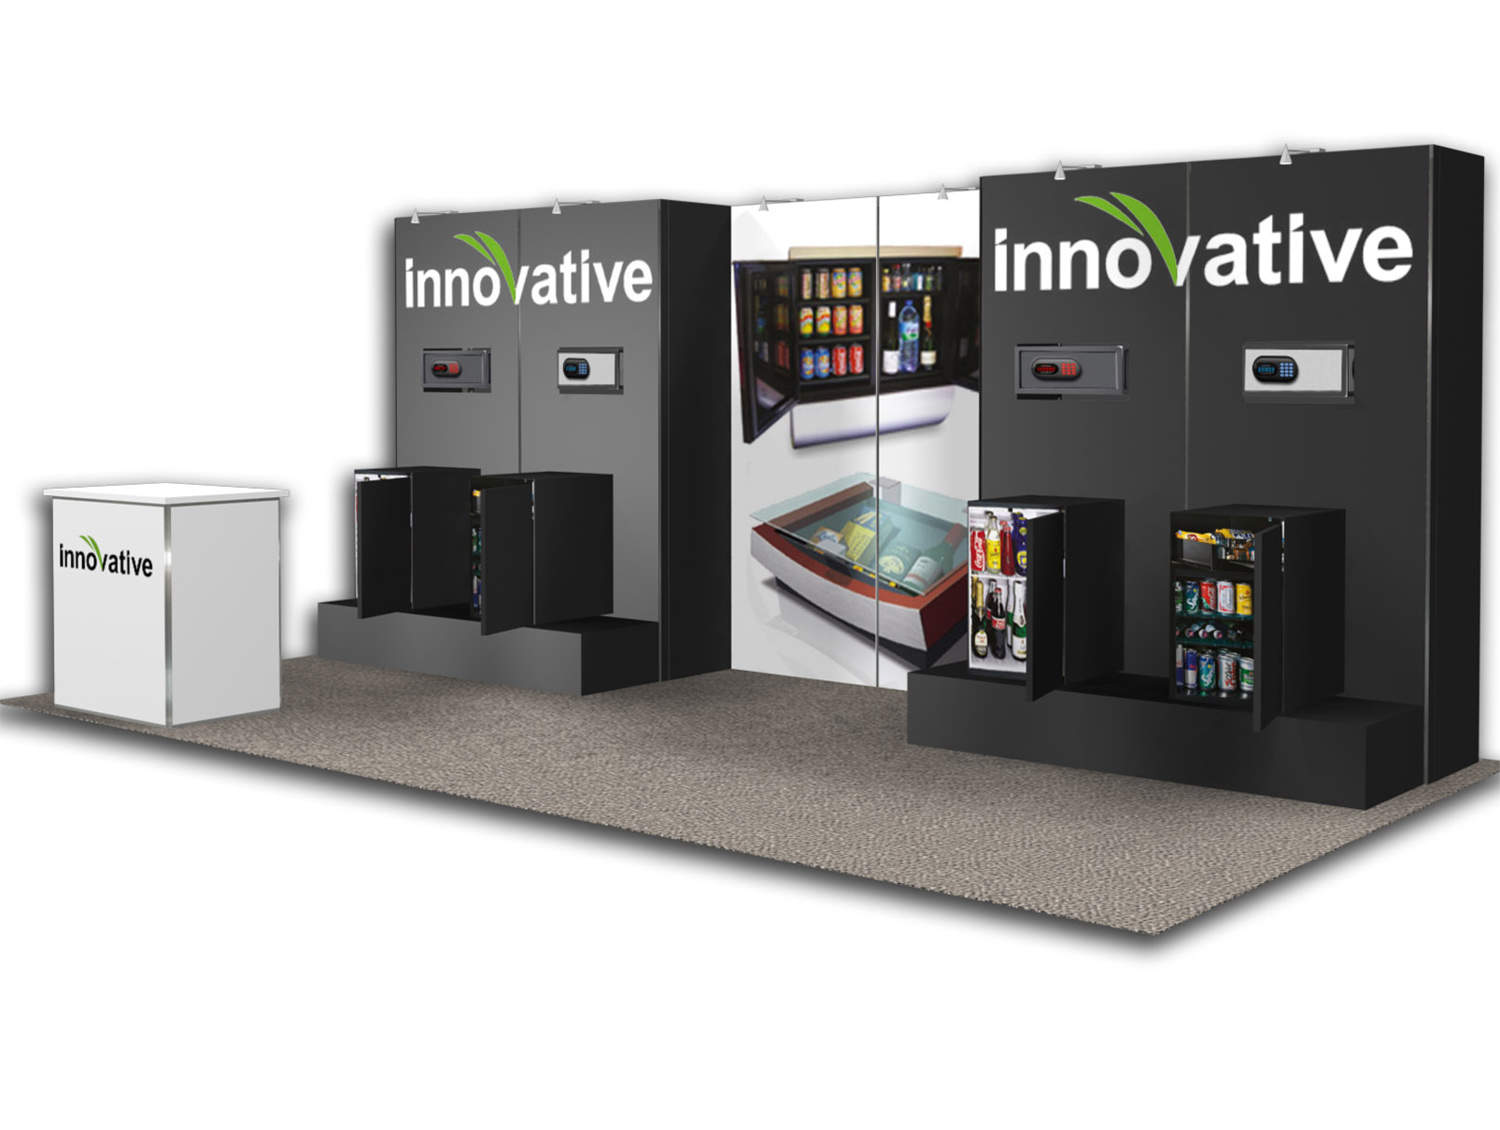 Innovative - 10x20 Trade Show Booth - Booth Design Ideas